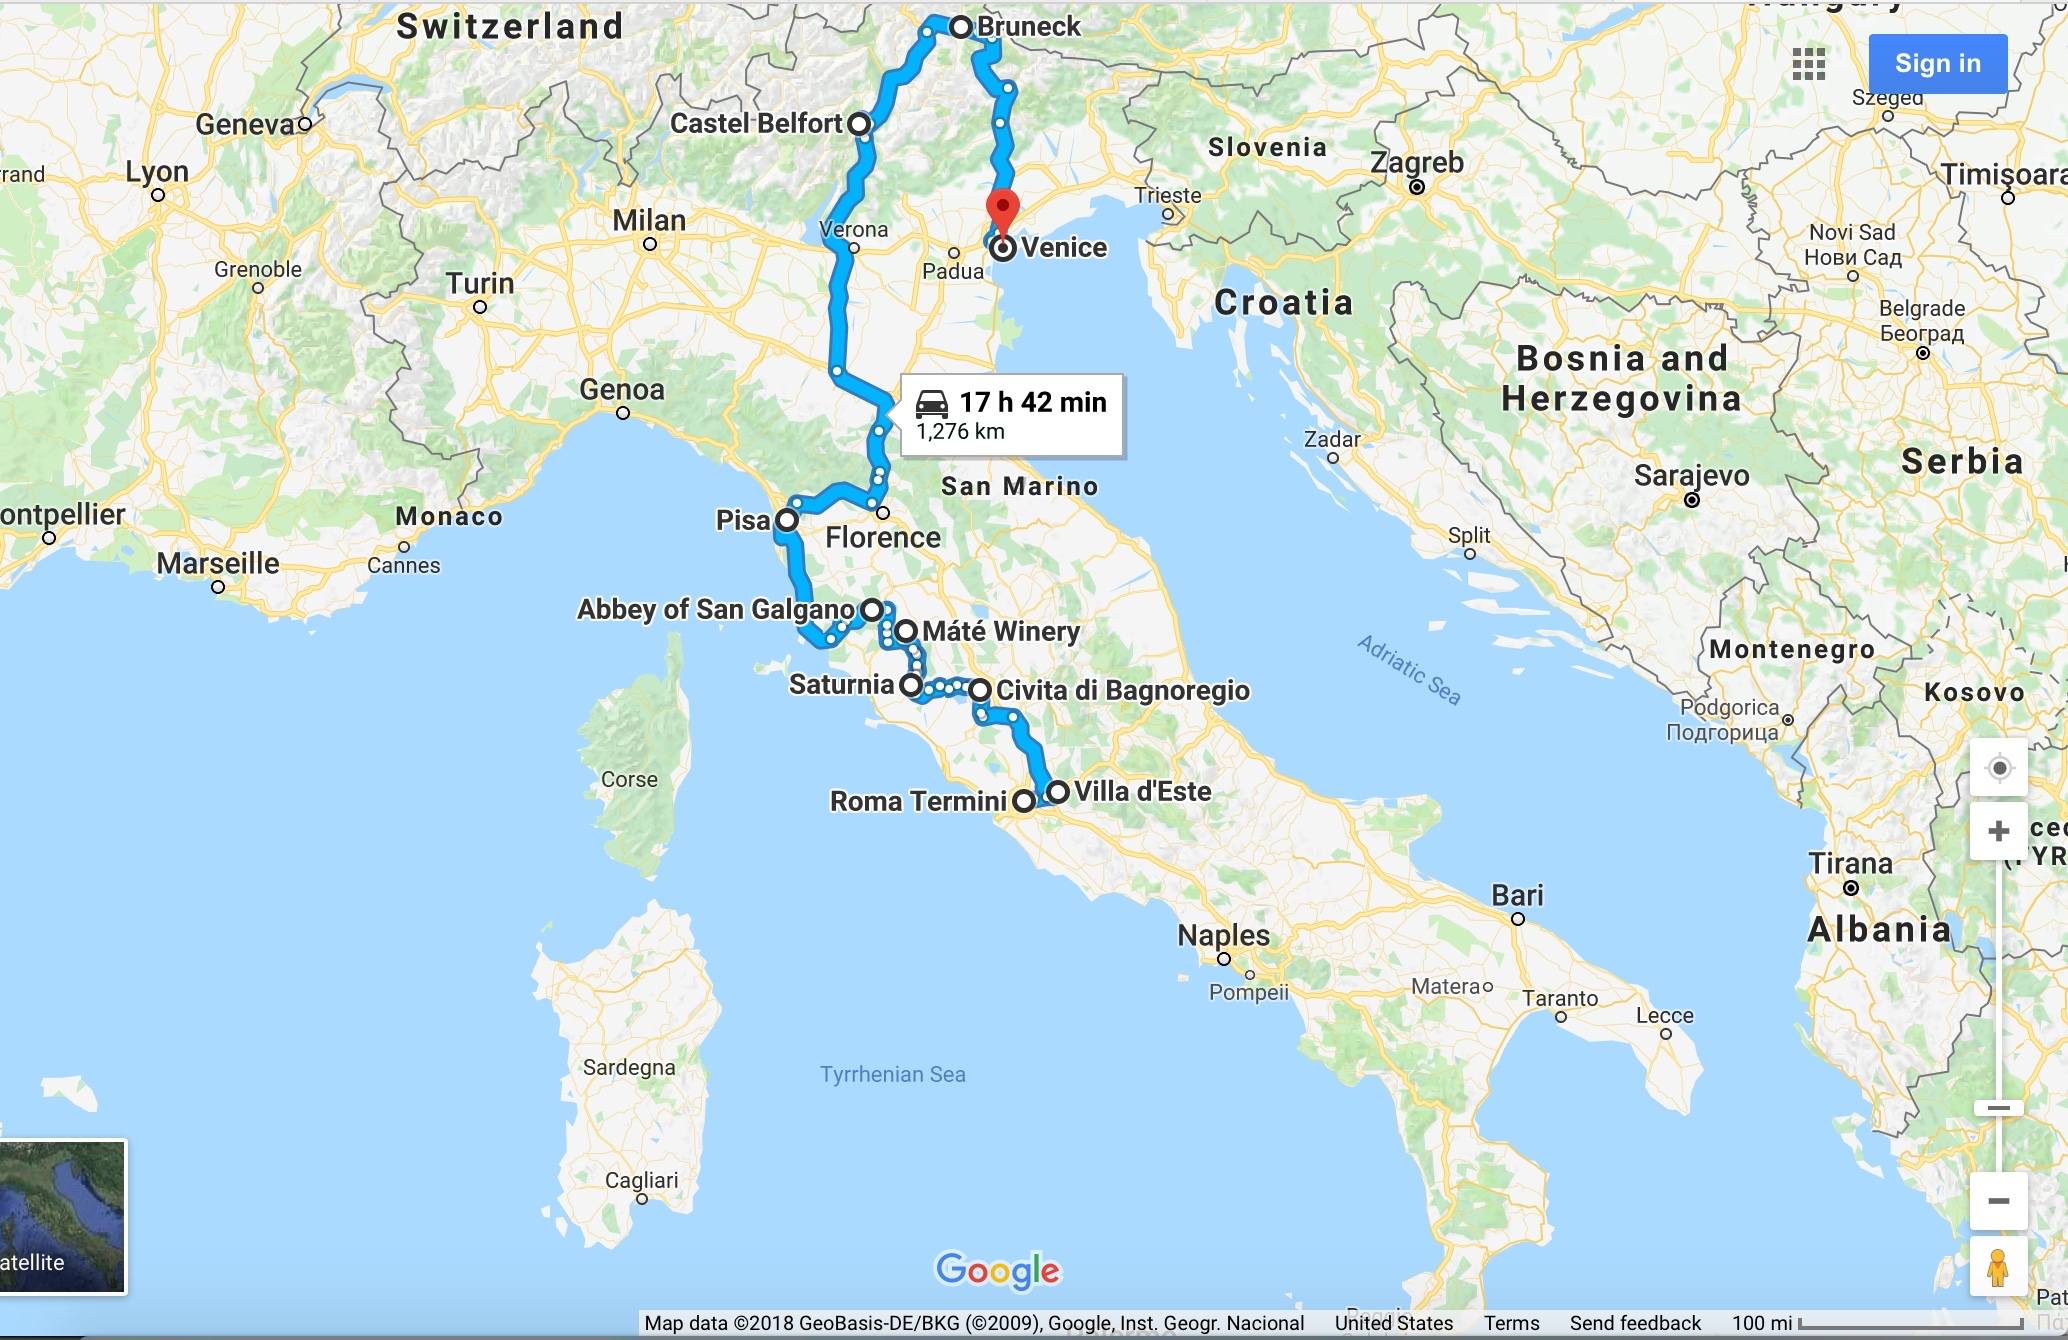 Our 10 day road trip through Italy